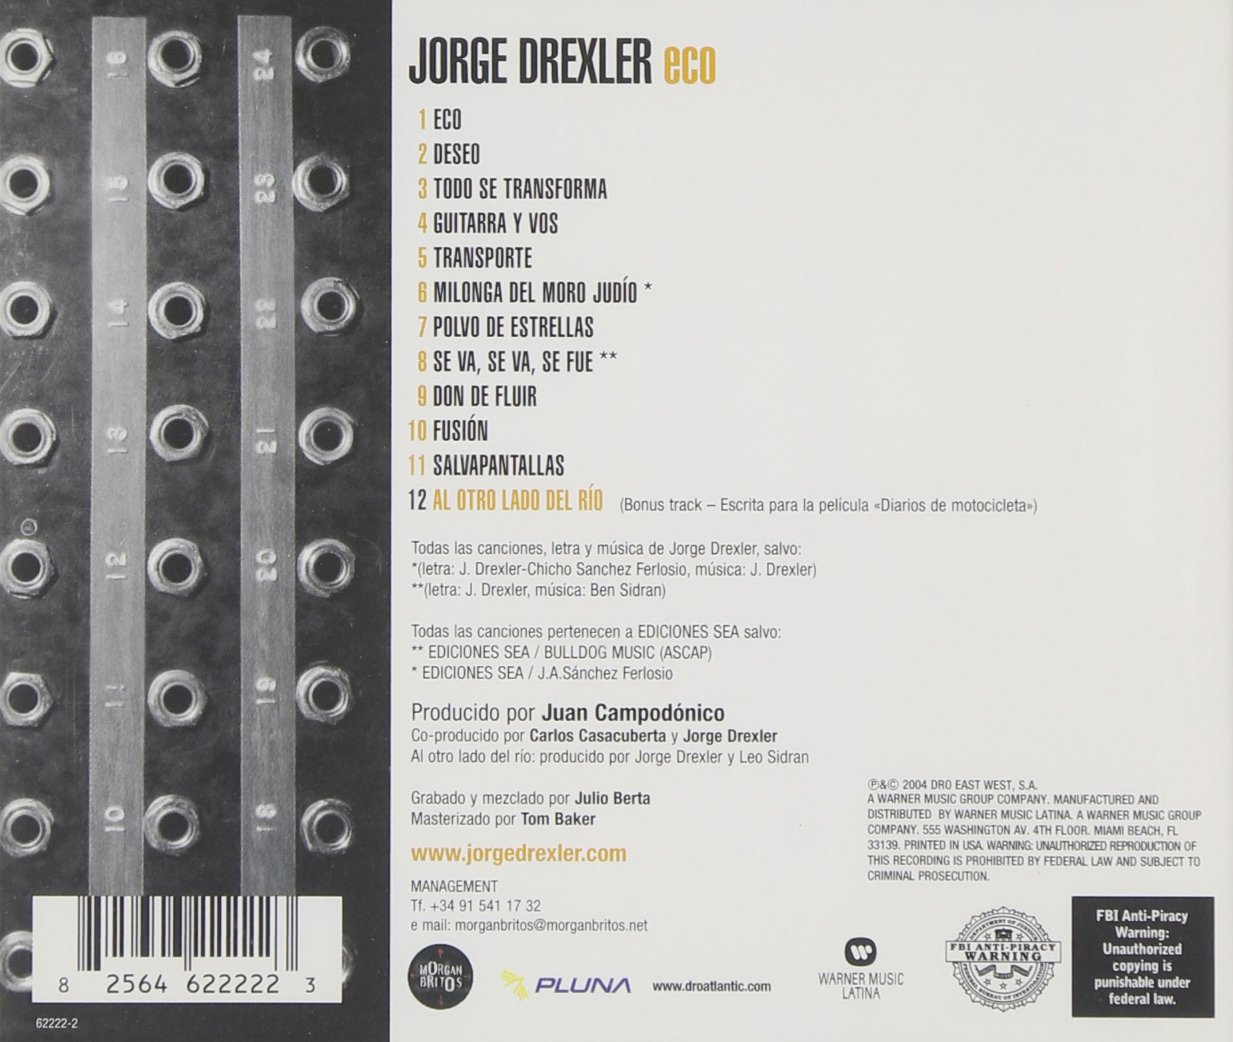 cd eco jorge drexler